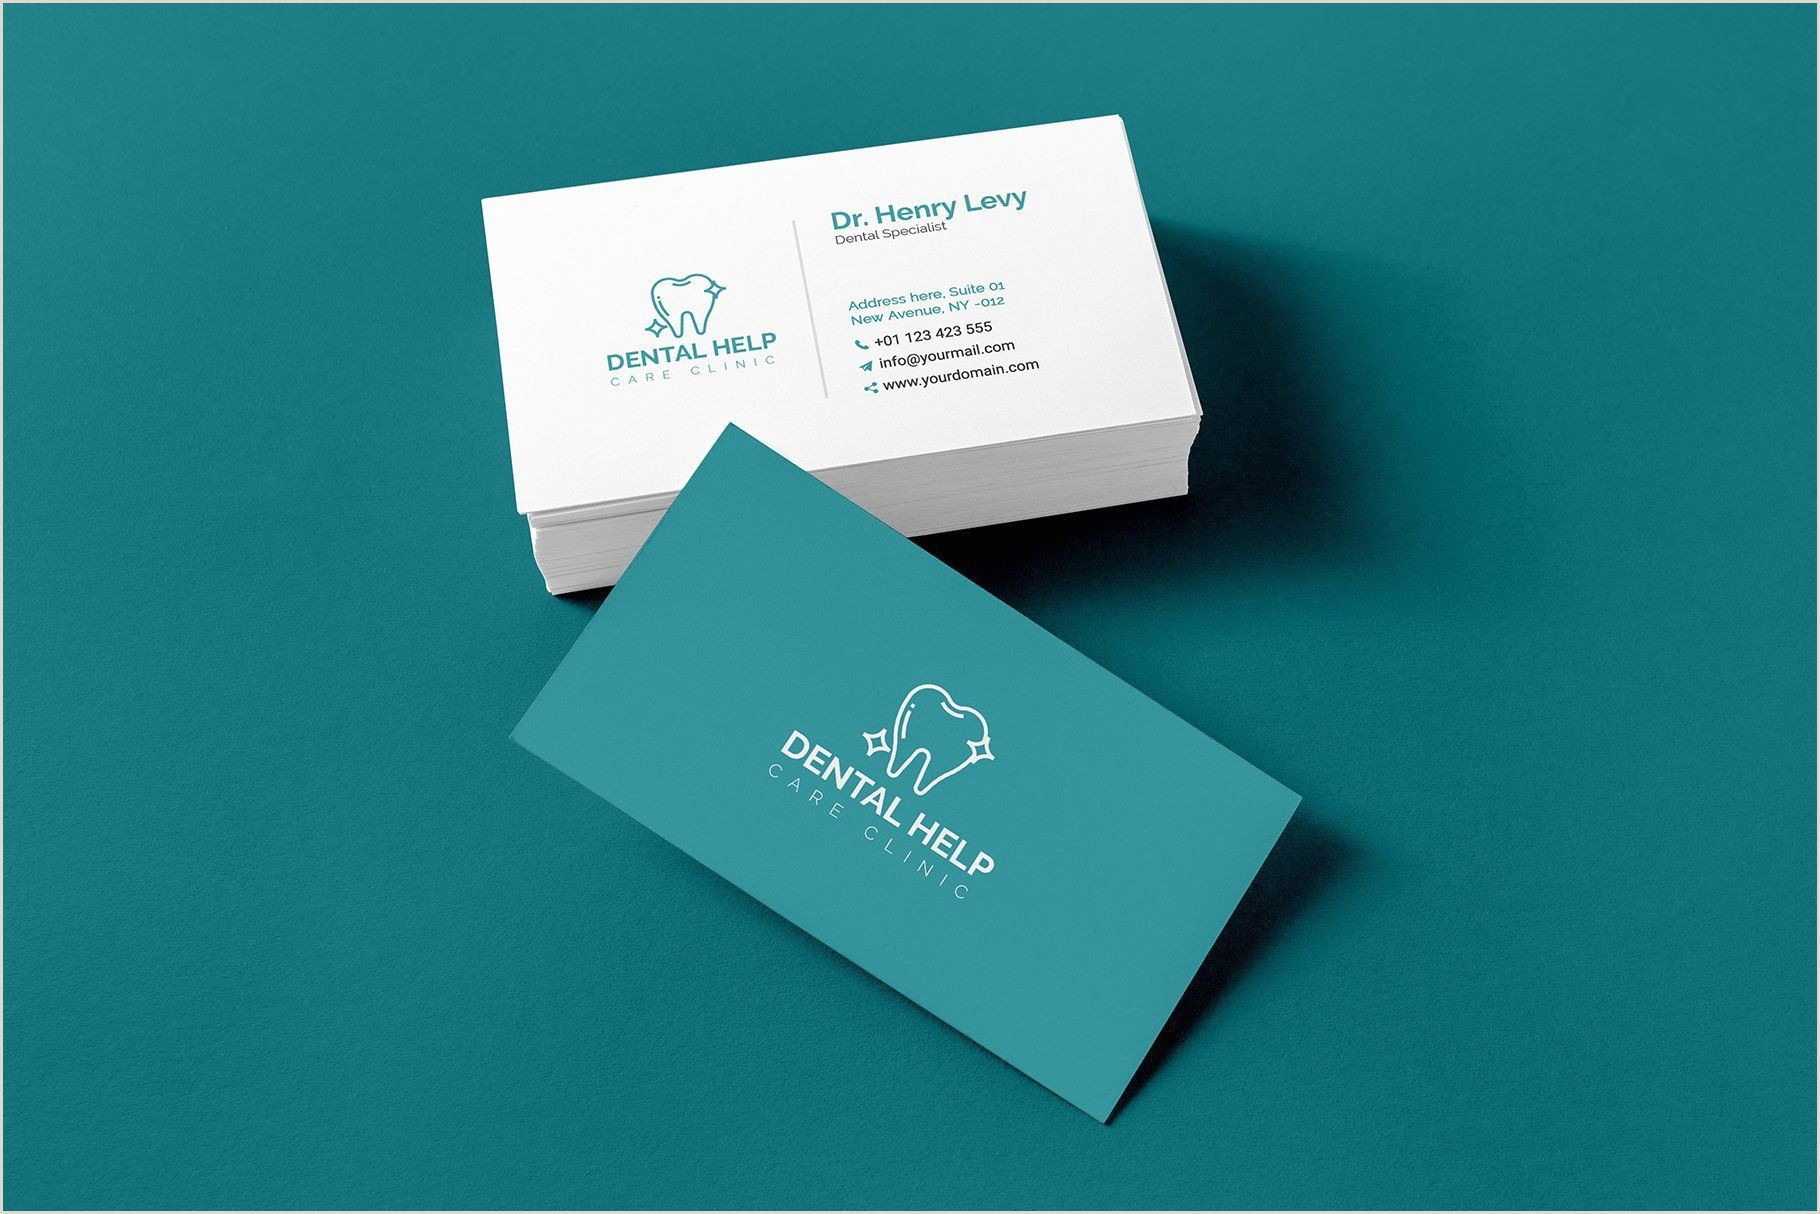 What Info Should Be On A Business Card Dentist Business Card Templates In 2020